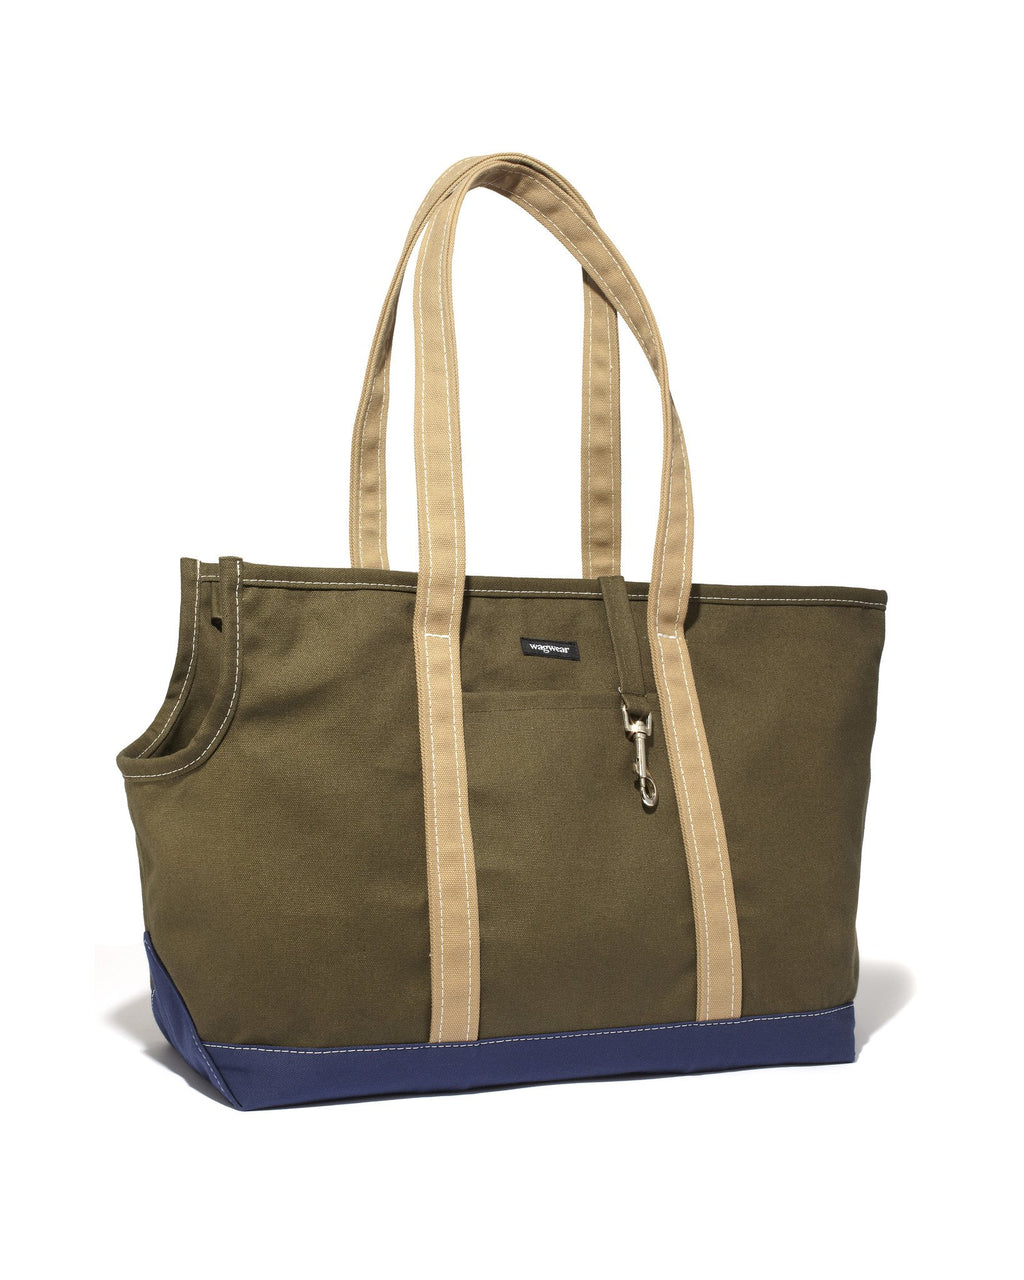 Tri-Color Boat Canvas Carrier - Olive/Navy/Tan